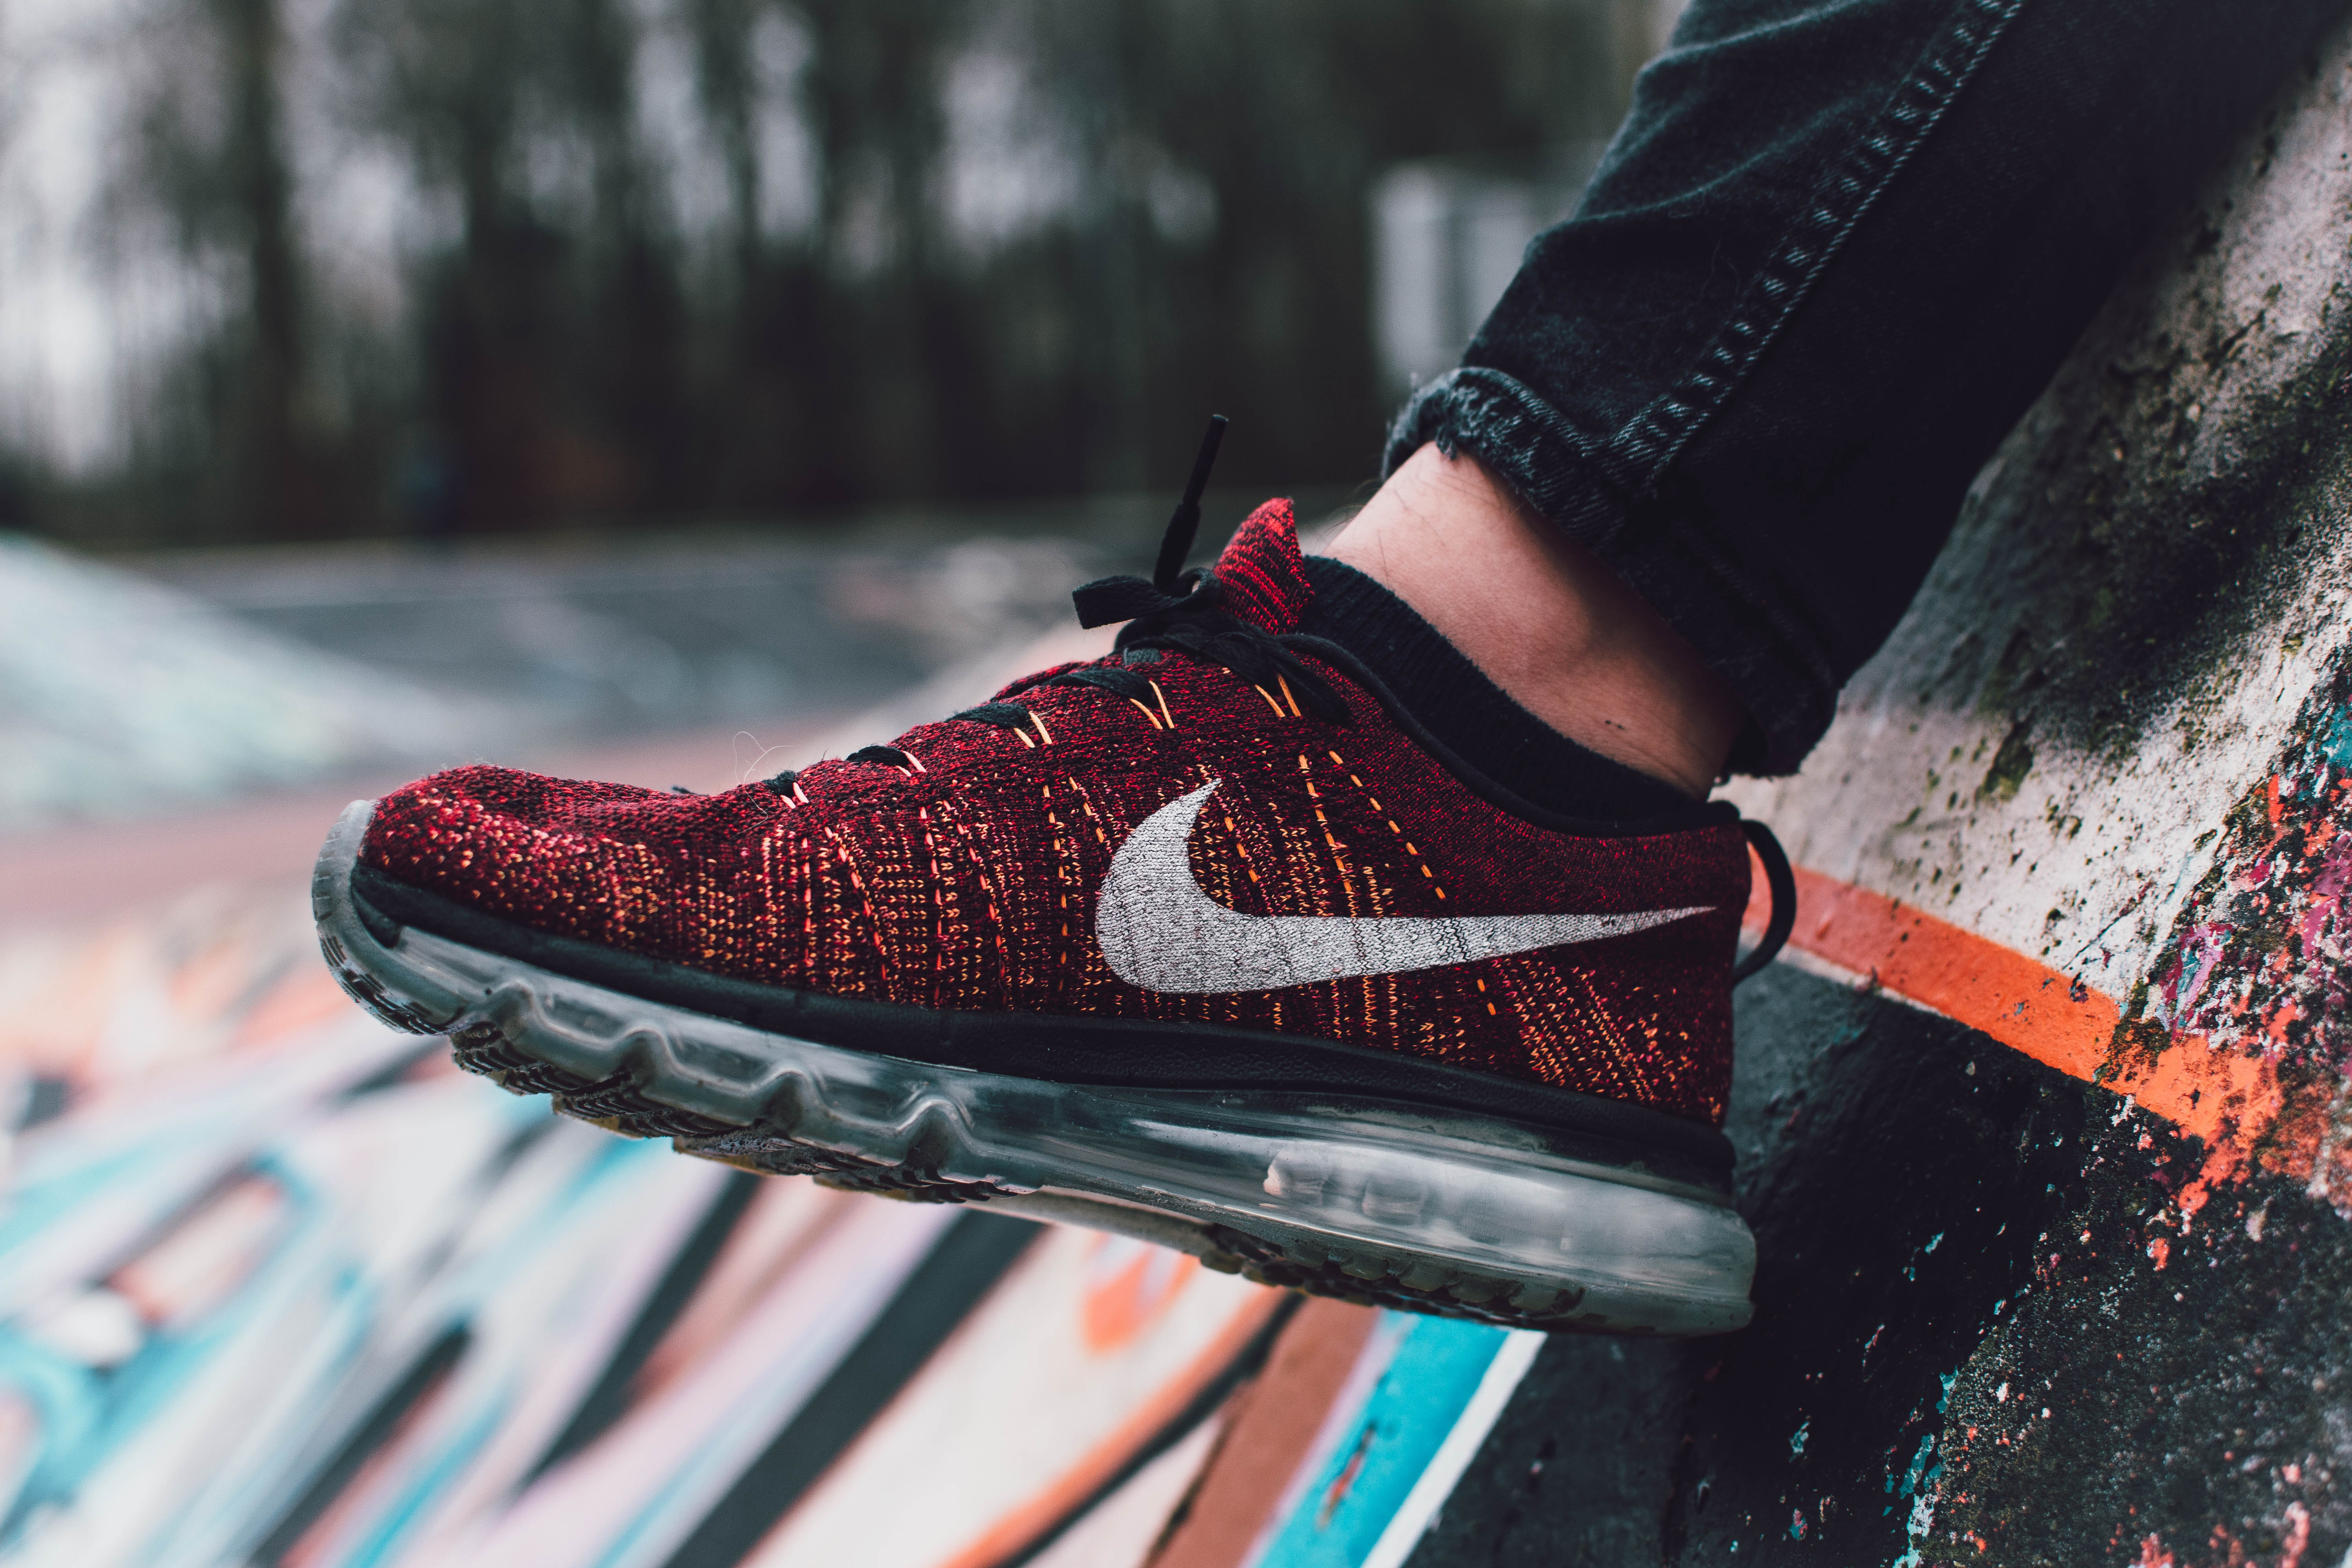 Top 15 Activewear/Athletic Shoe Brands on YouTube (Global)